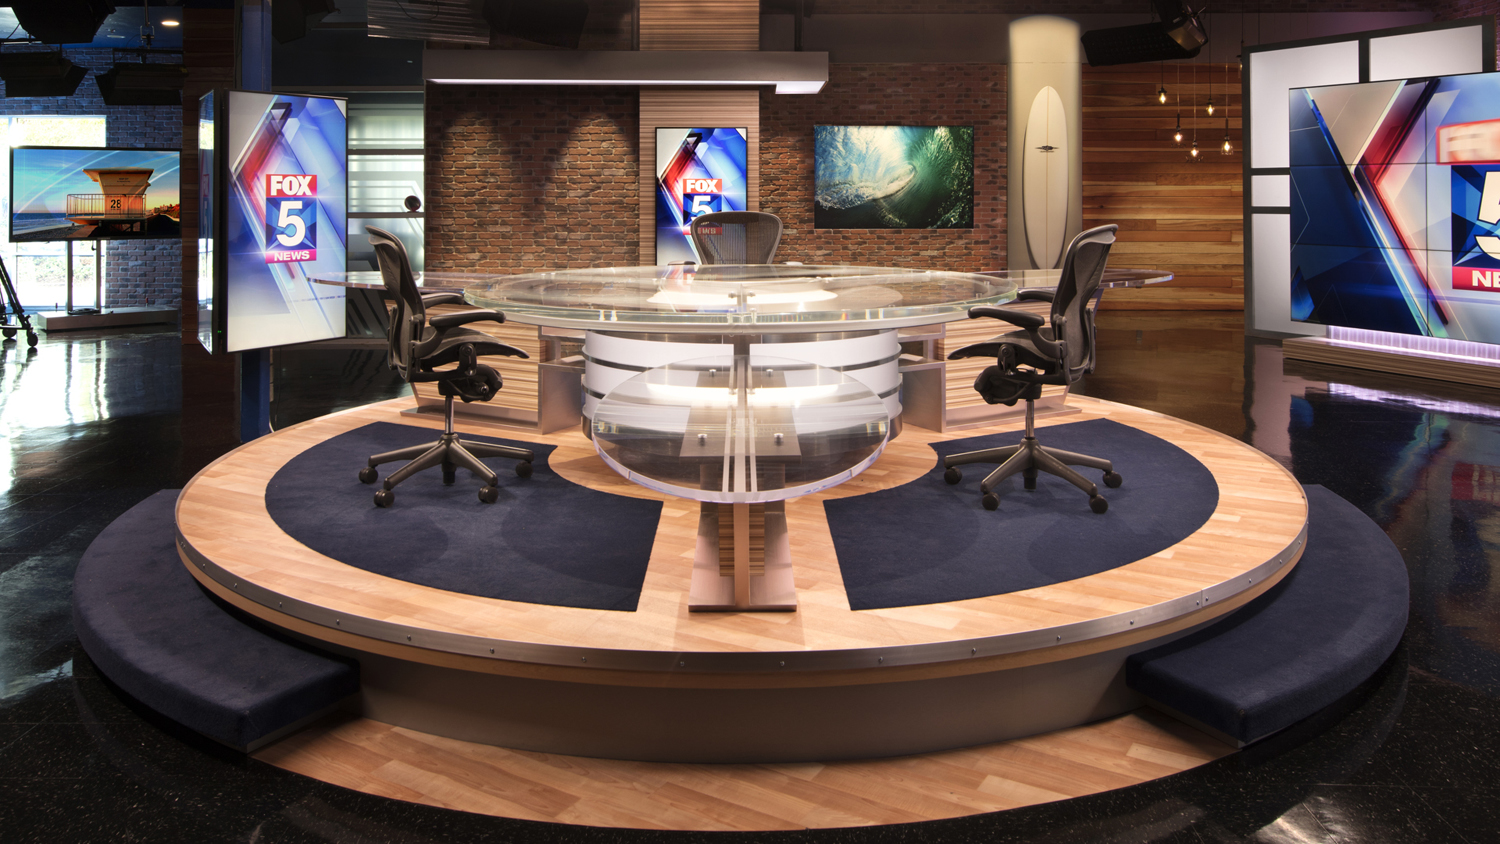 NCS_KSWB-Fox-5-San-Diego-TV-Studio_0005